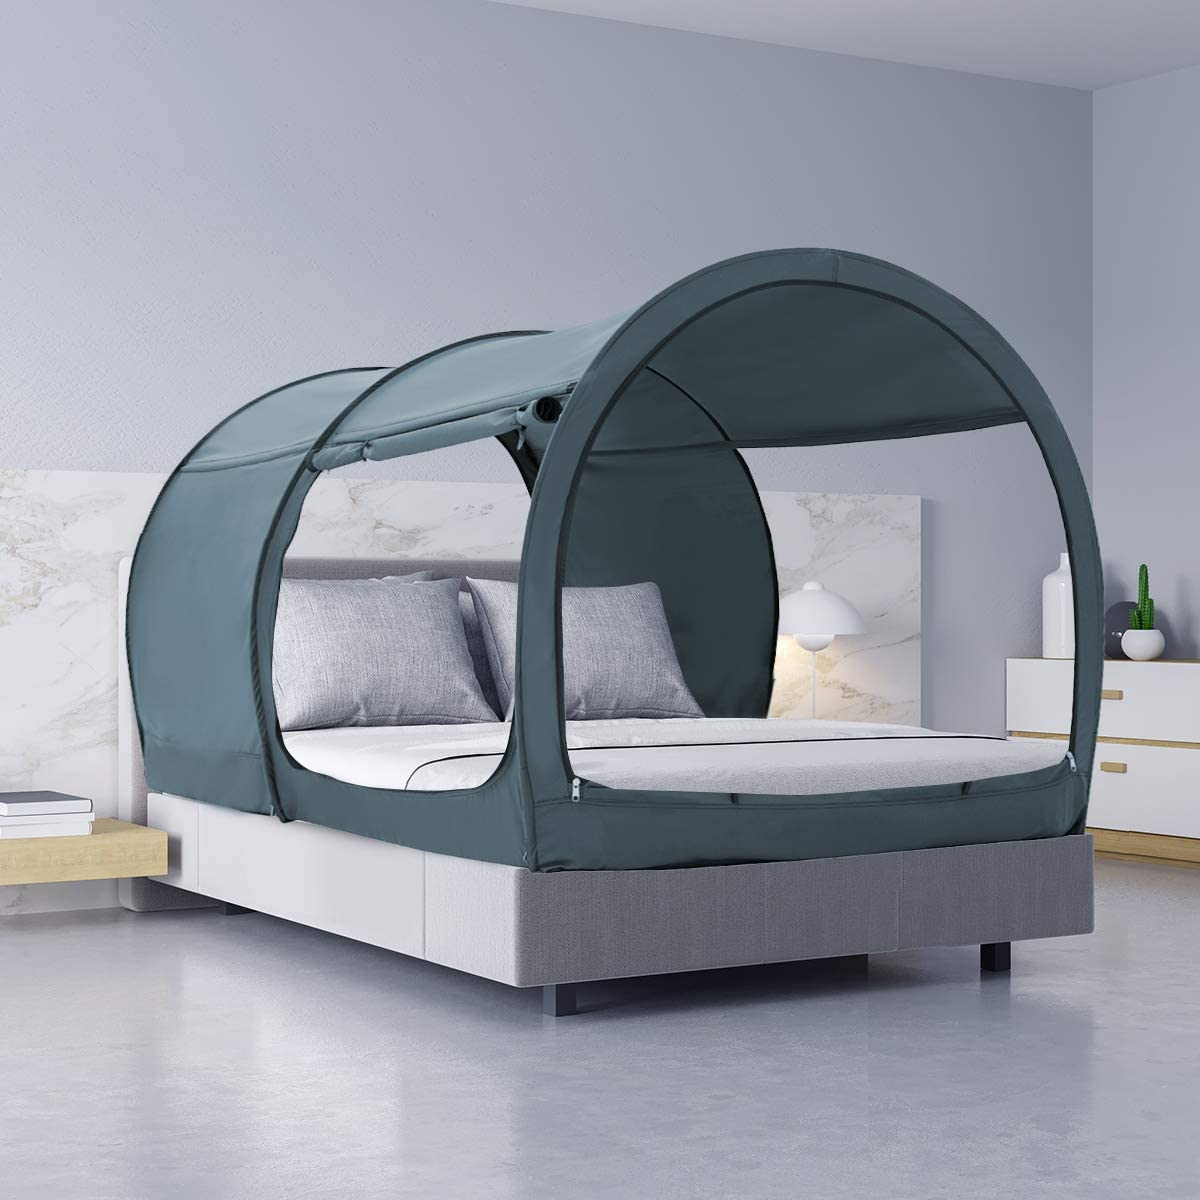 Mattress Not Included Bed Tent Dream Tents Bed Canopy Shelter Cabin Indoor Privacy Warm Breathable Pop Up Bunk Twin Size for Kids and Adult Patent Pending PitchBlack